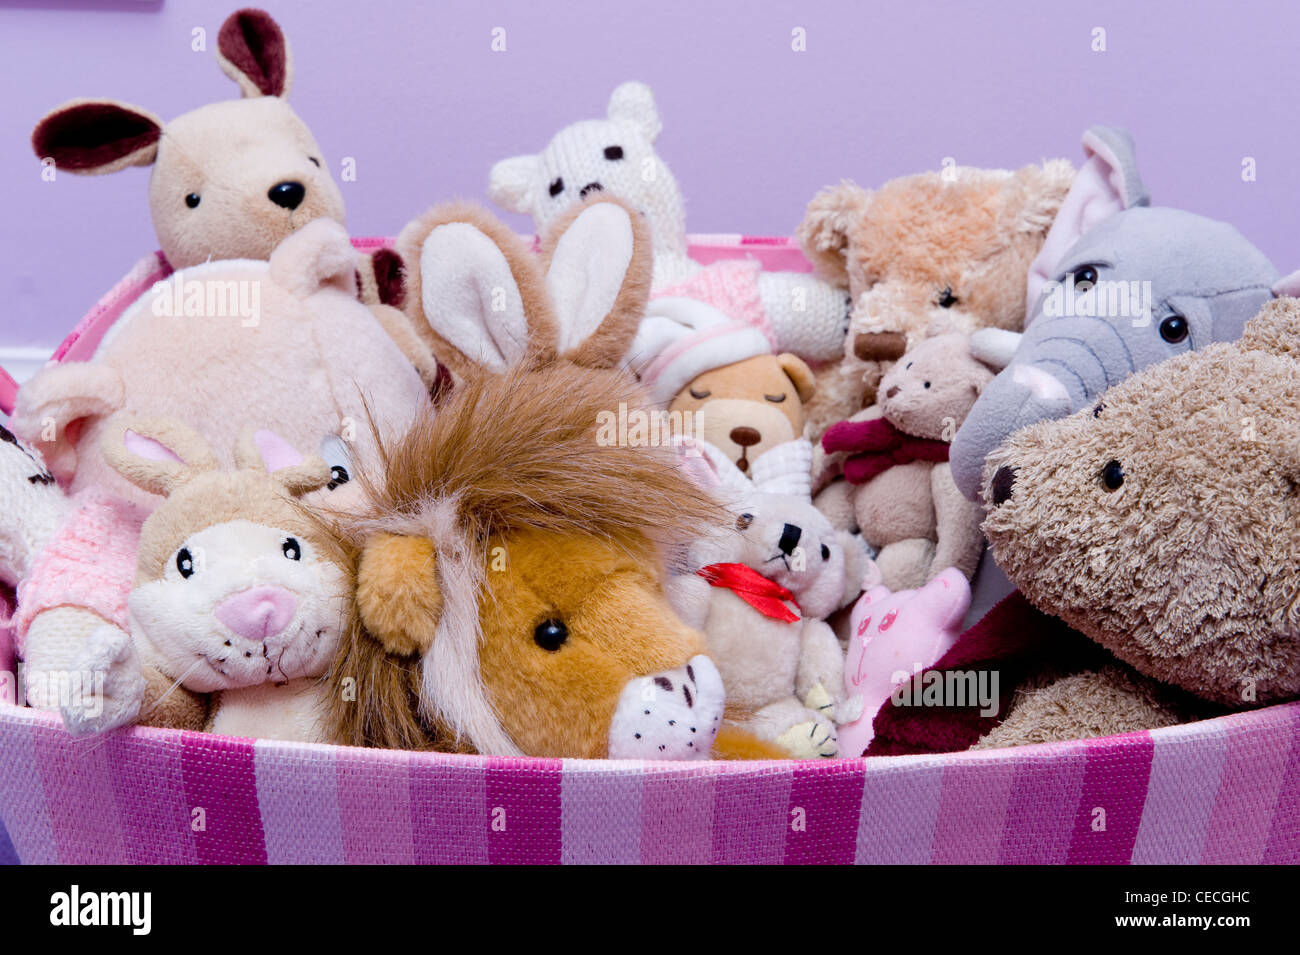 Toy Box Toys A Toy Box Full Of Soft Toys Stock Photo 43302376 Alamy